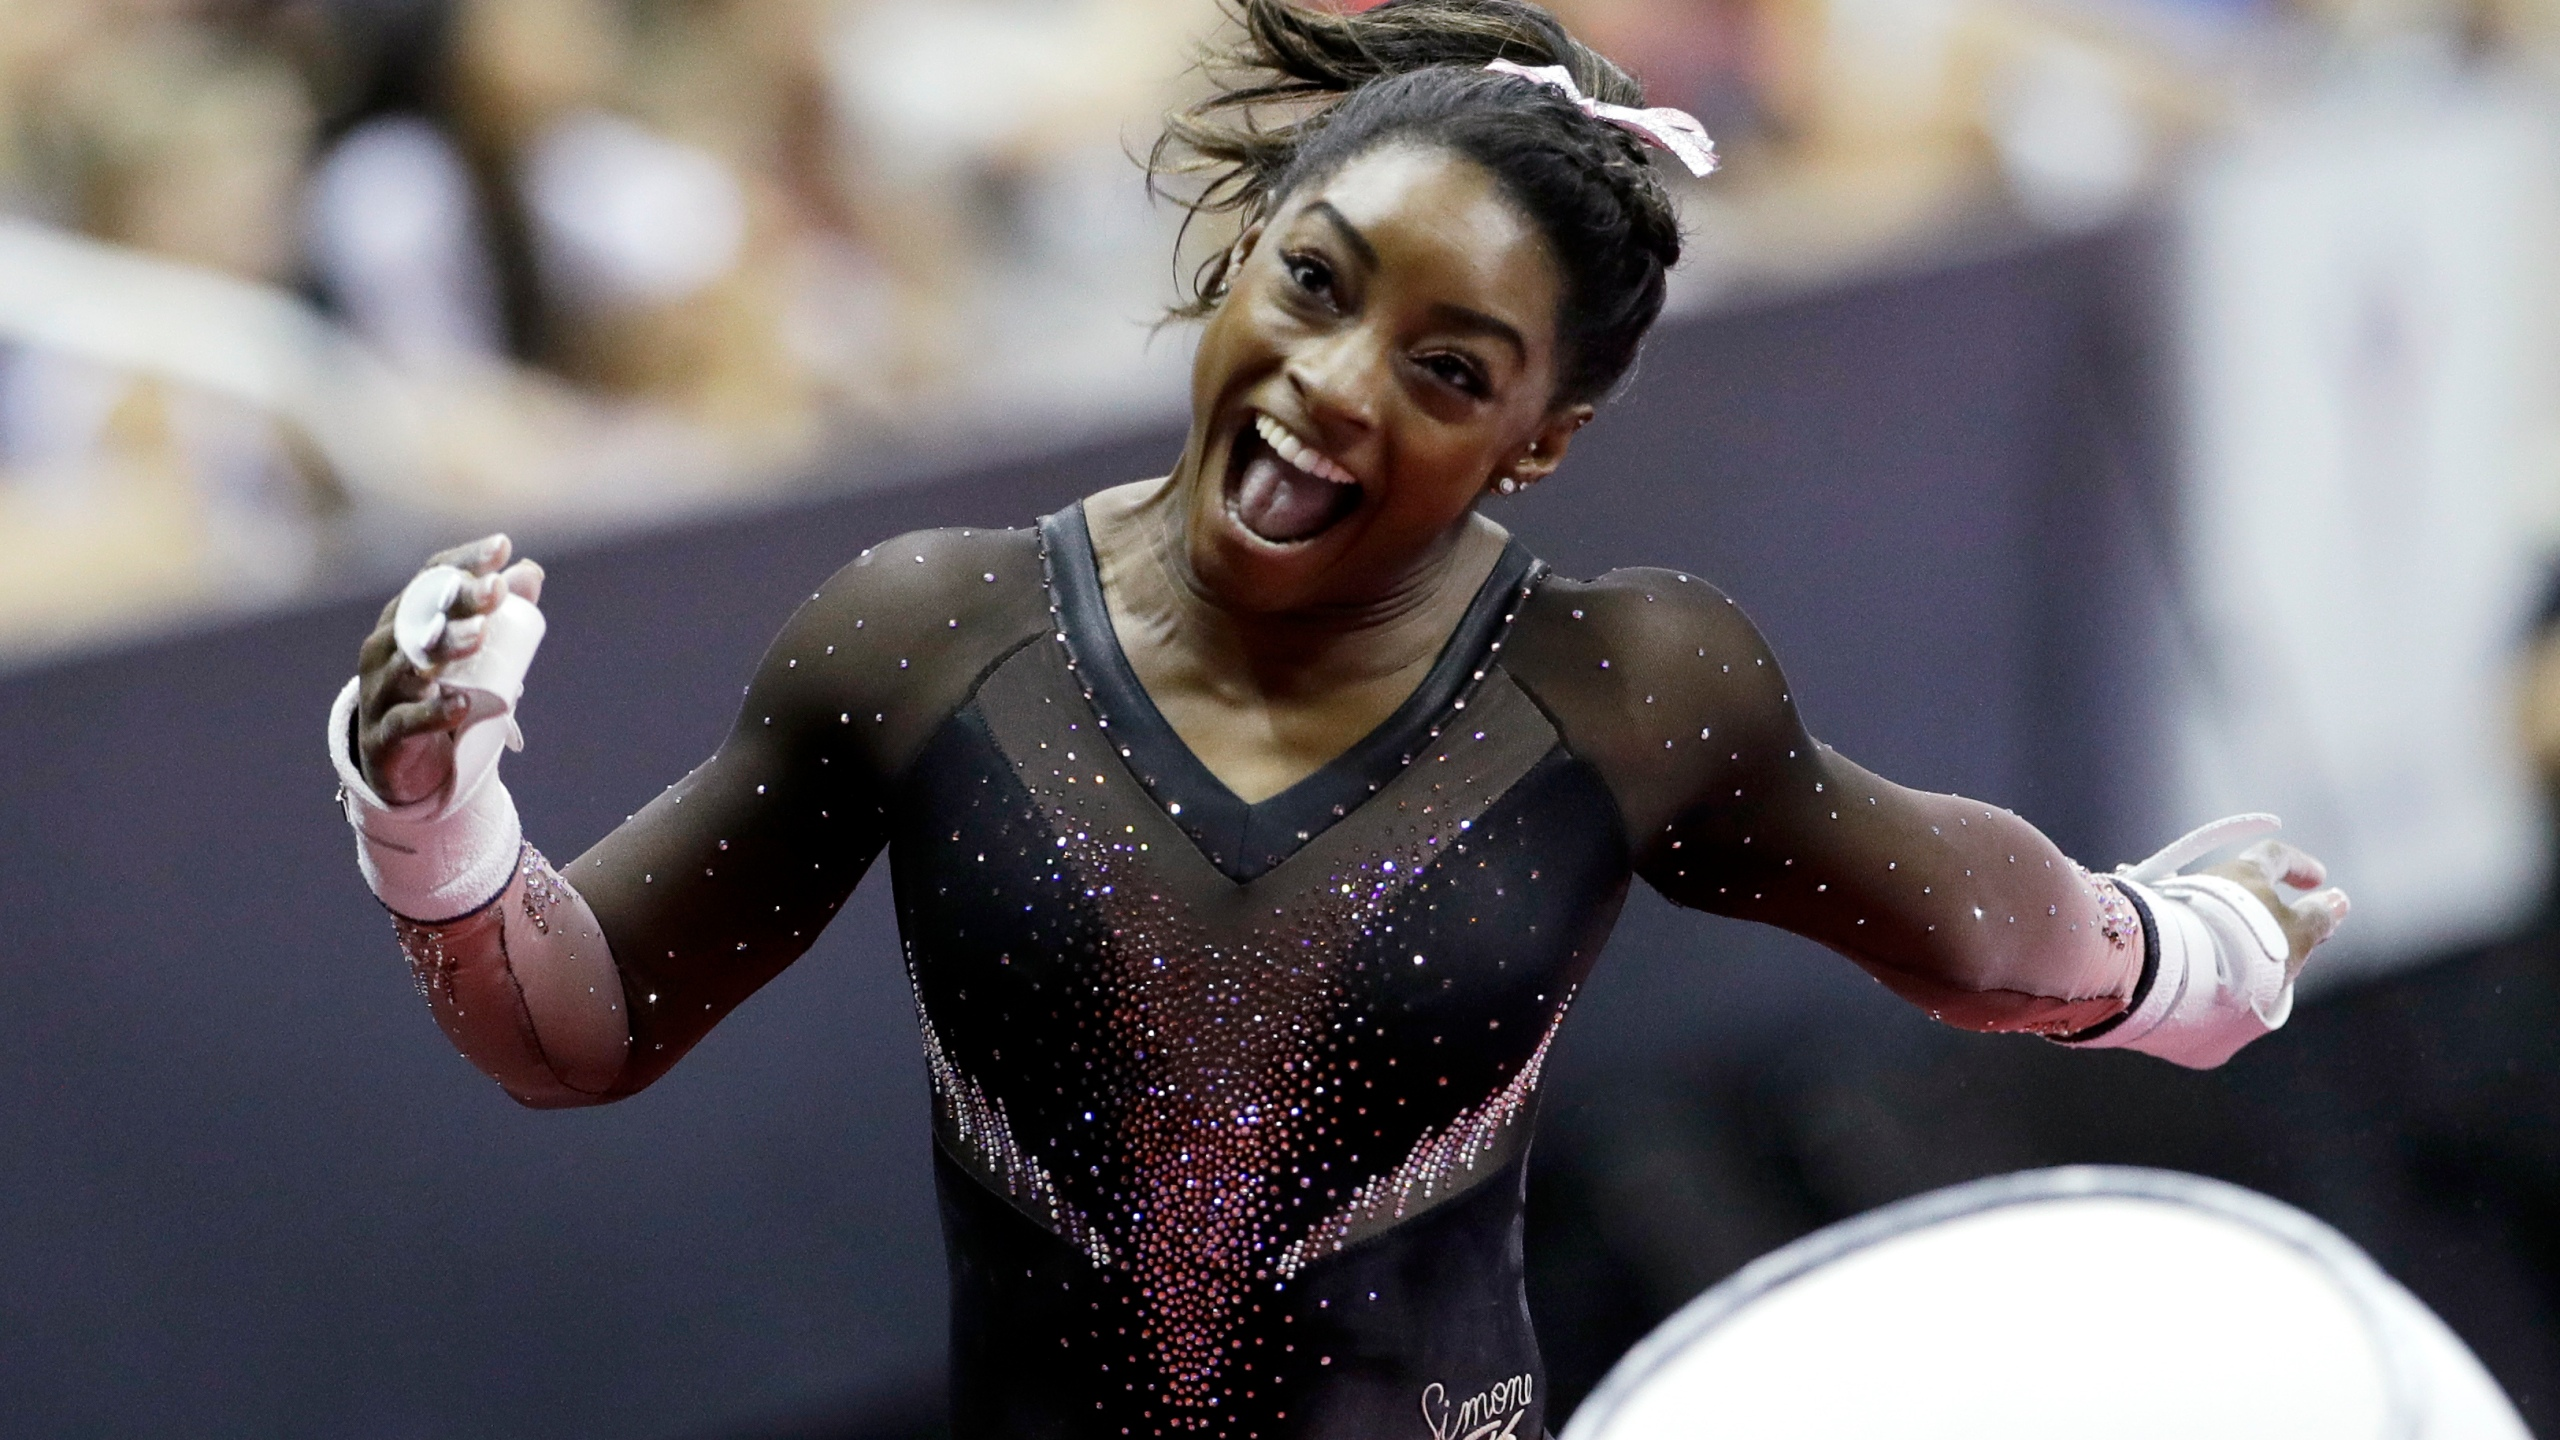 Simone Biles soars to 6th US gymnastics title, makes history with